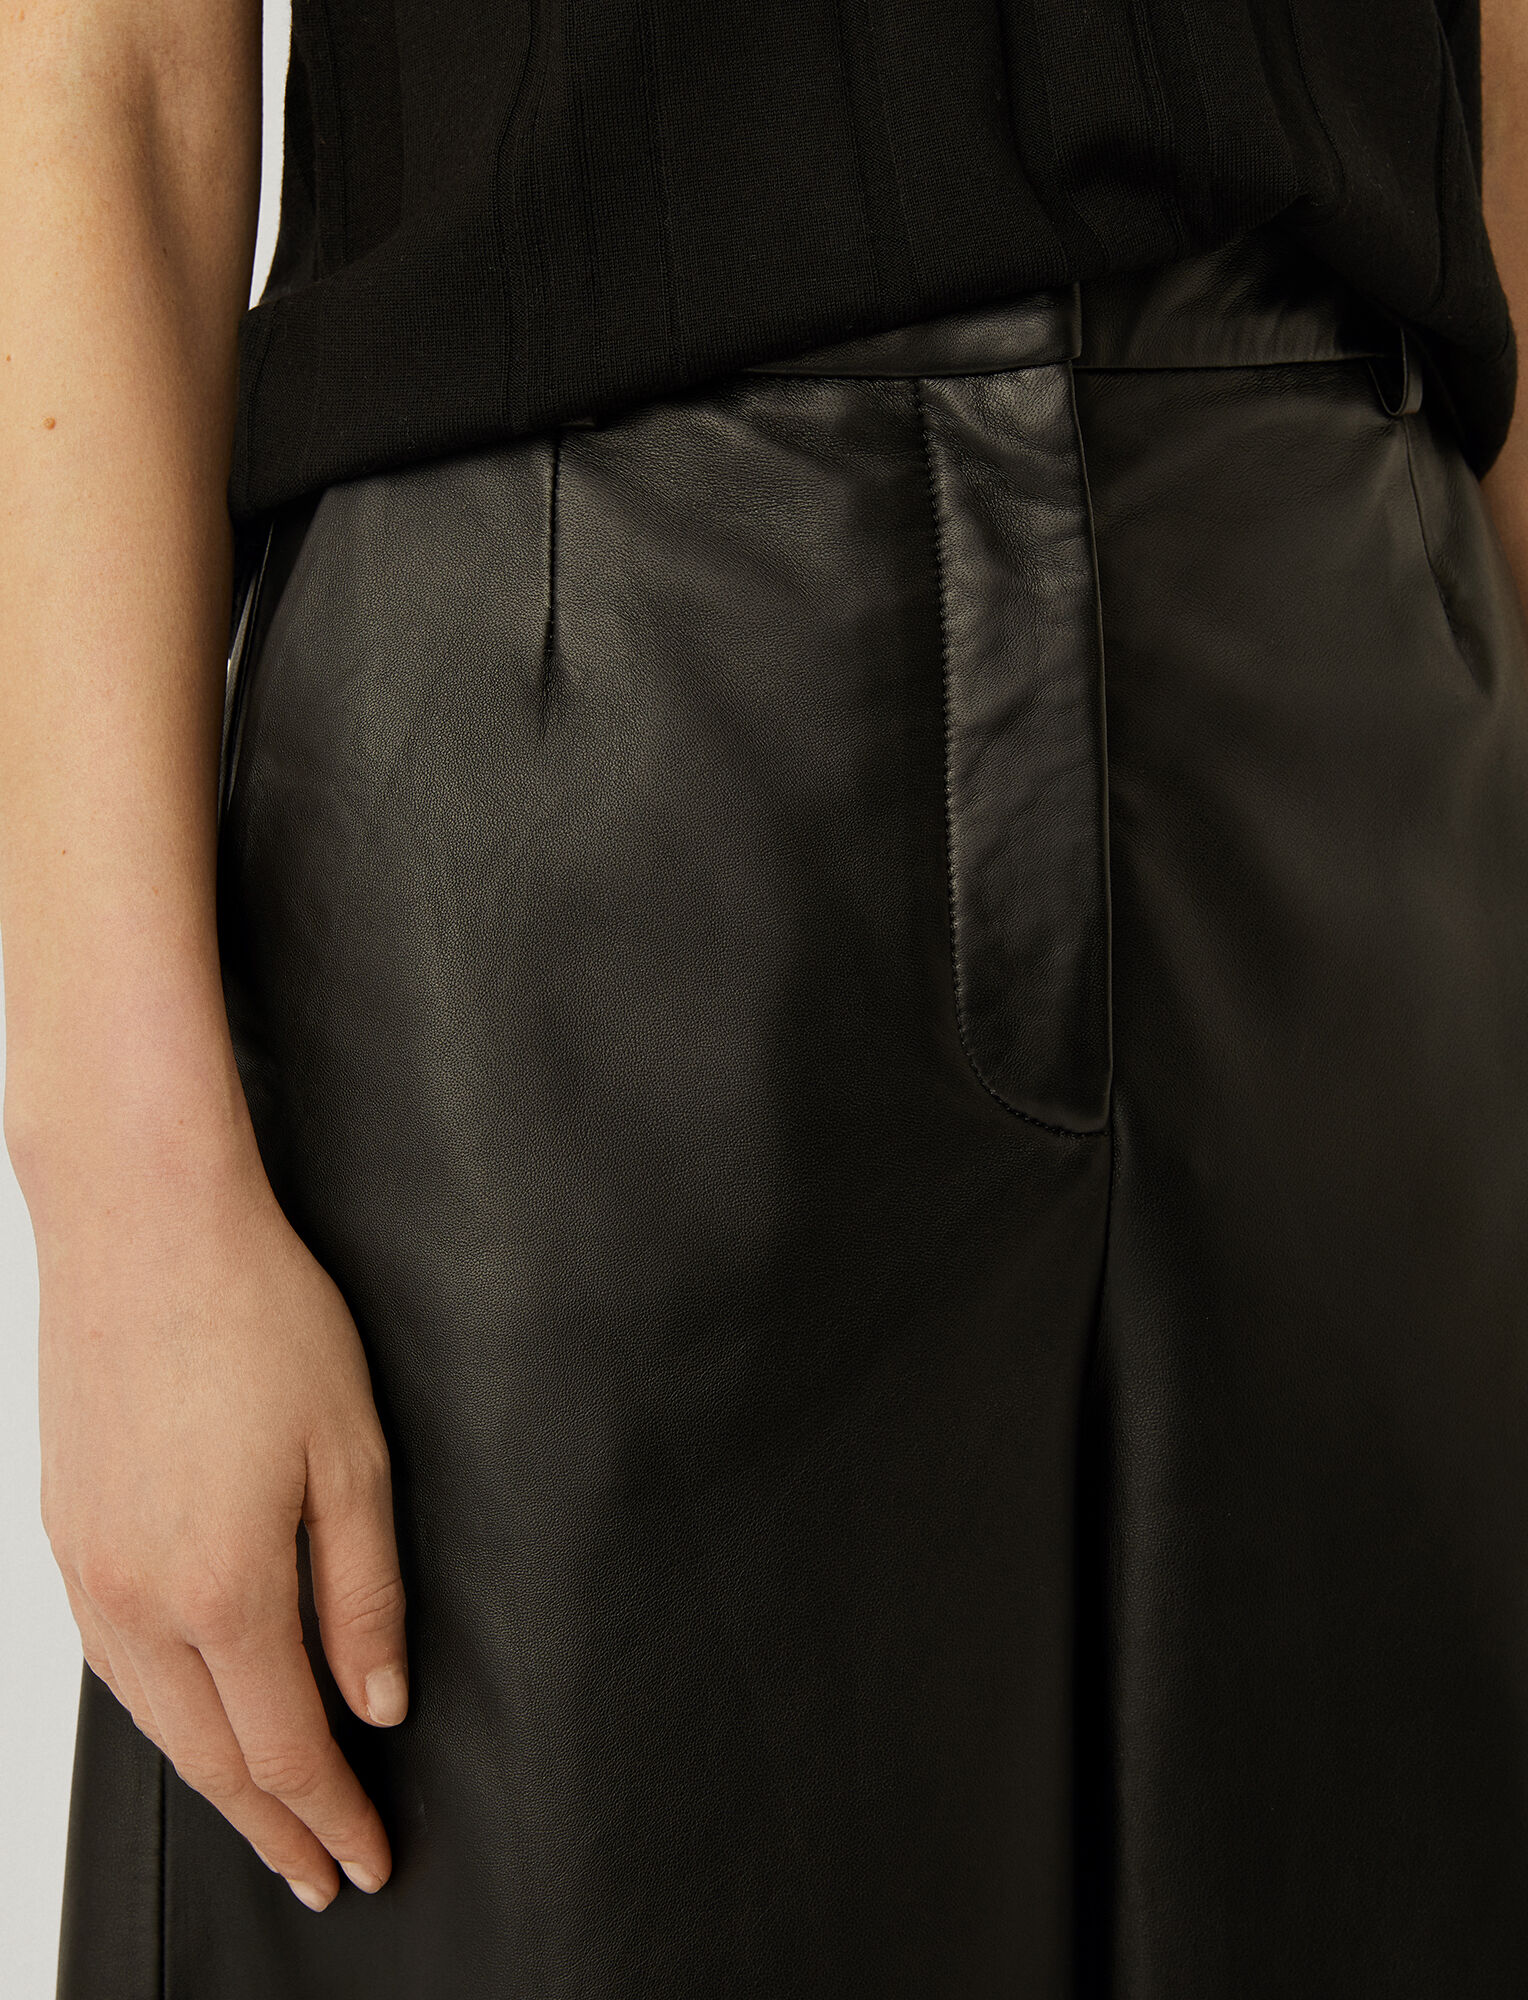 Joseph, Nappa Leather Teresa Shorts, in BLACK